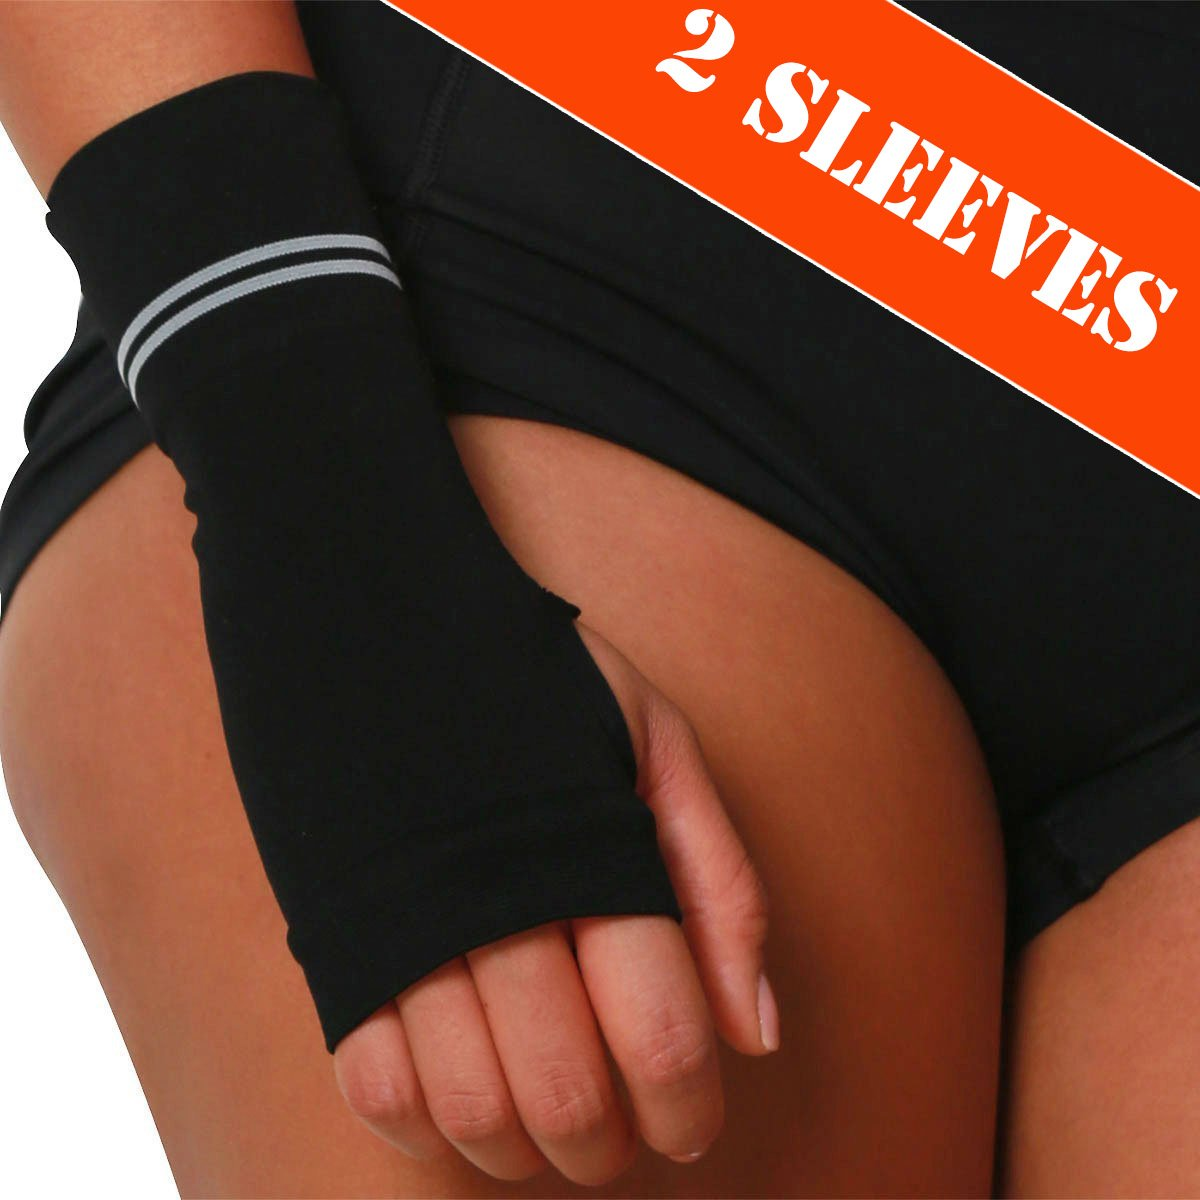 Compression Wrist Support Sleeve - Relieve Carpel Tunnel, Wrist Pain - Best Wrist Support - Improve Circulation and Support Wrist (Black - 2 Pack, M)